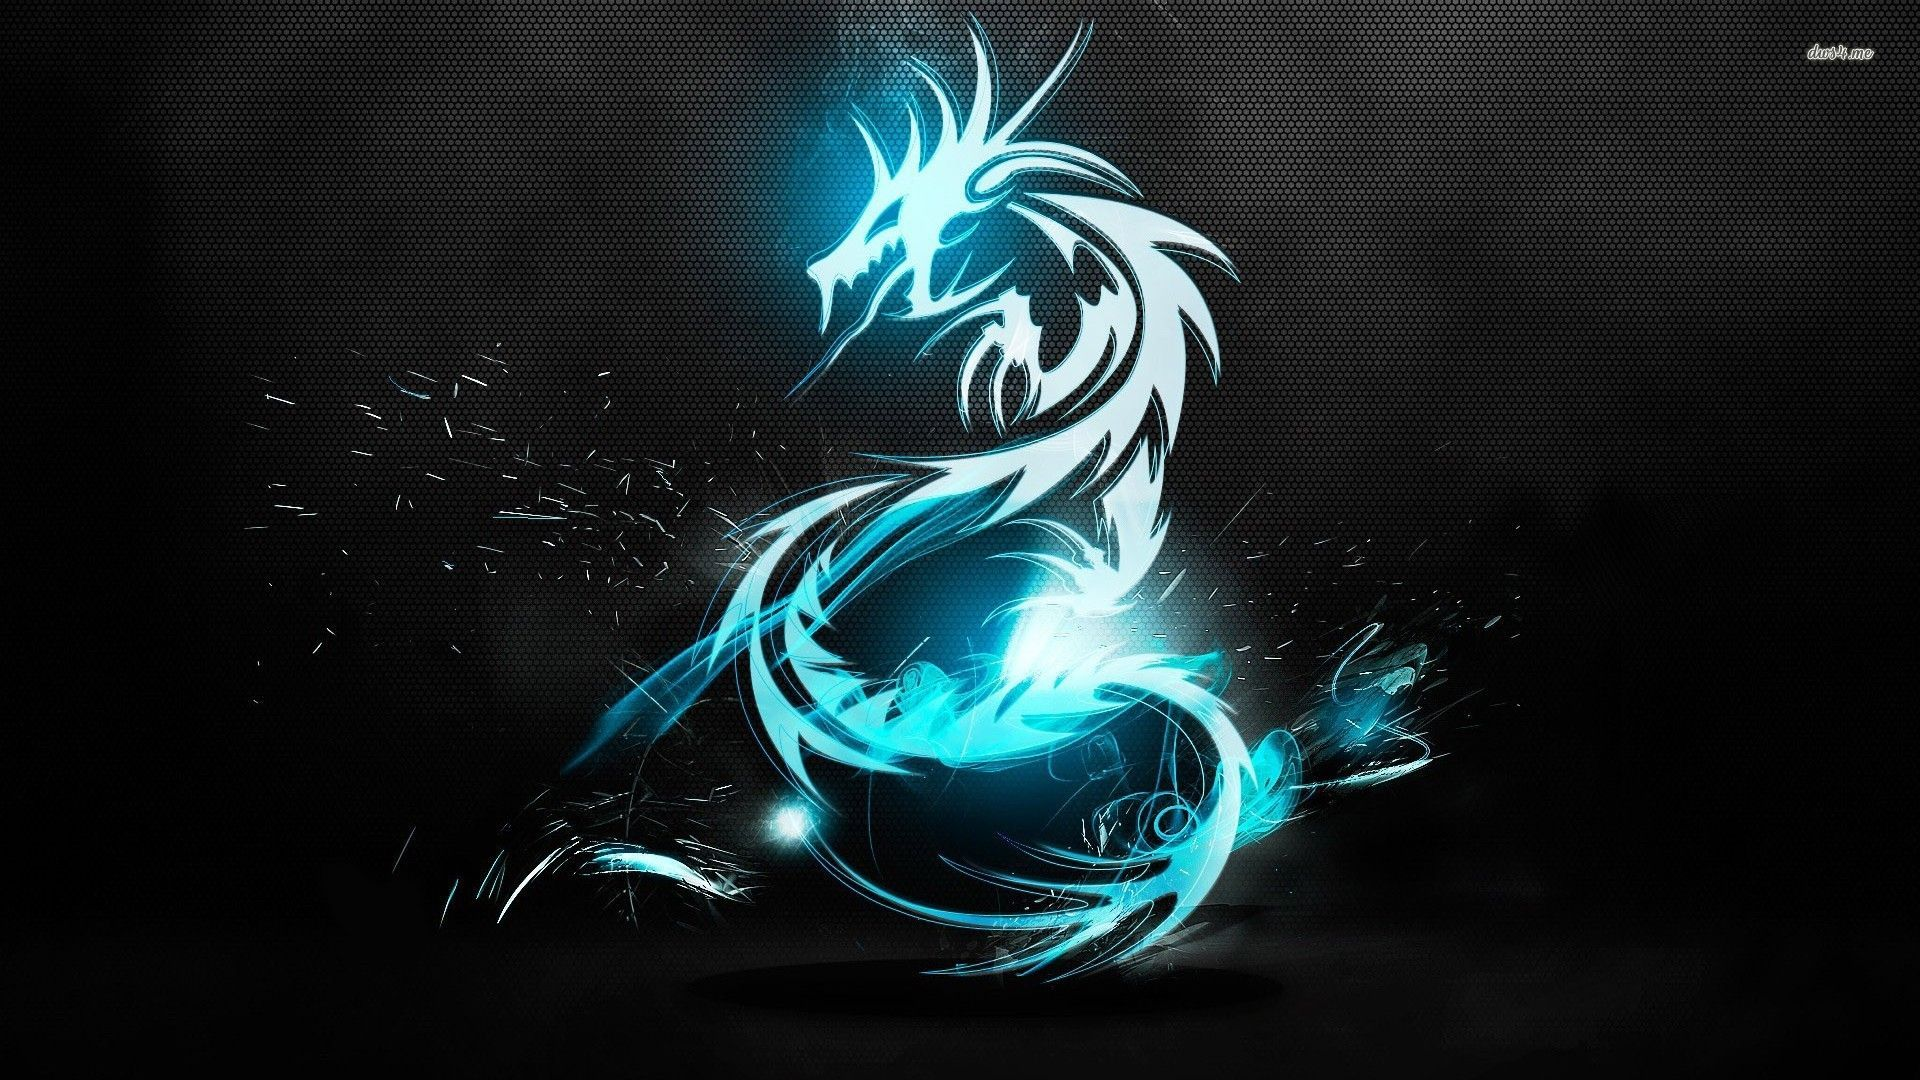 Blue Dragon HD Wallpapers 9 BlueDragonHDWallpapers